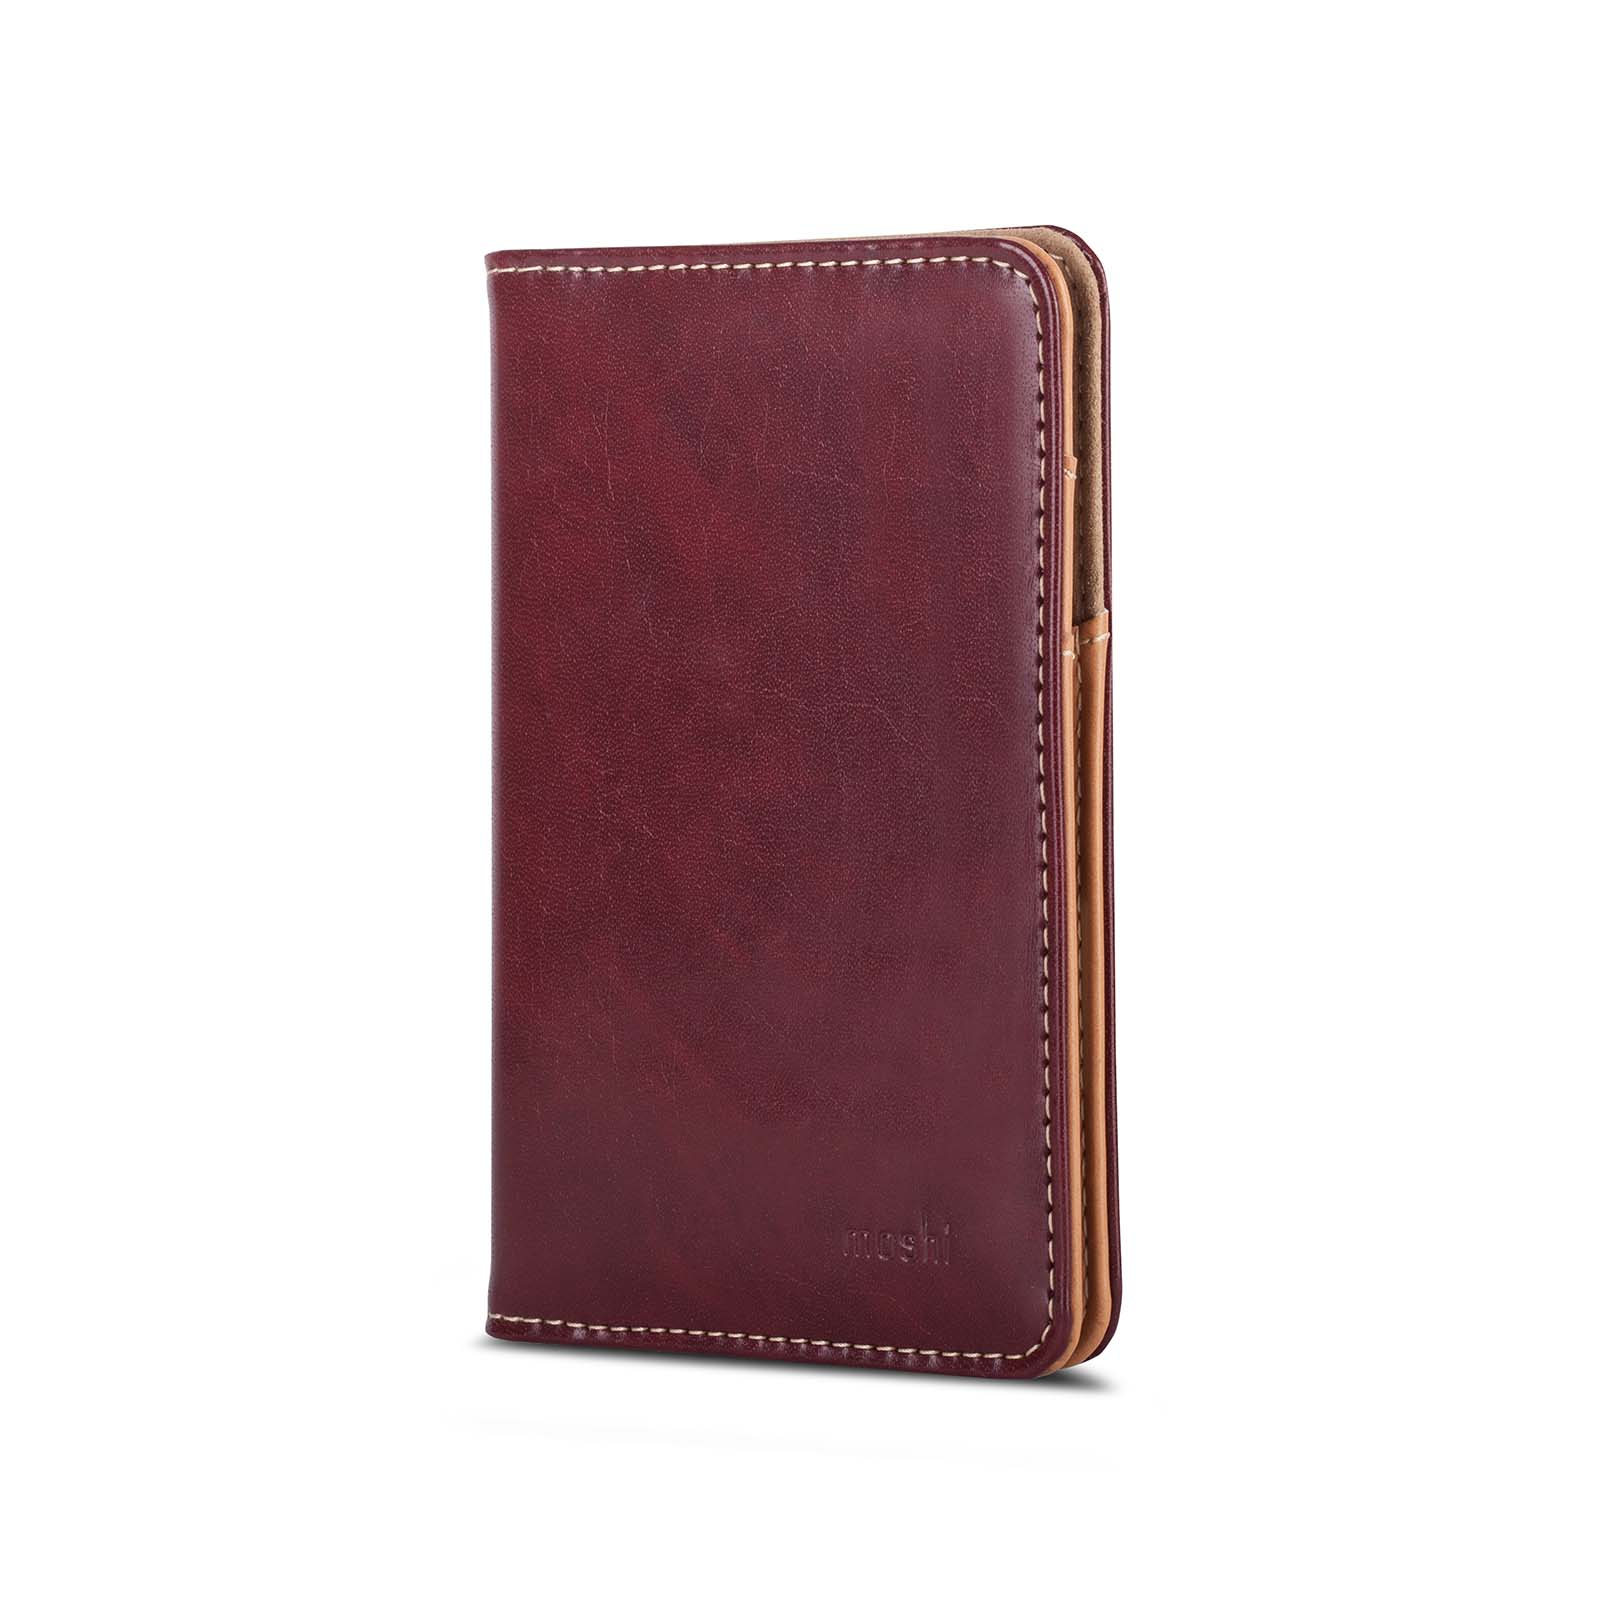 Vegan Leather Passport Holder-2-thumbnail